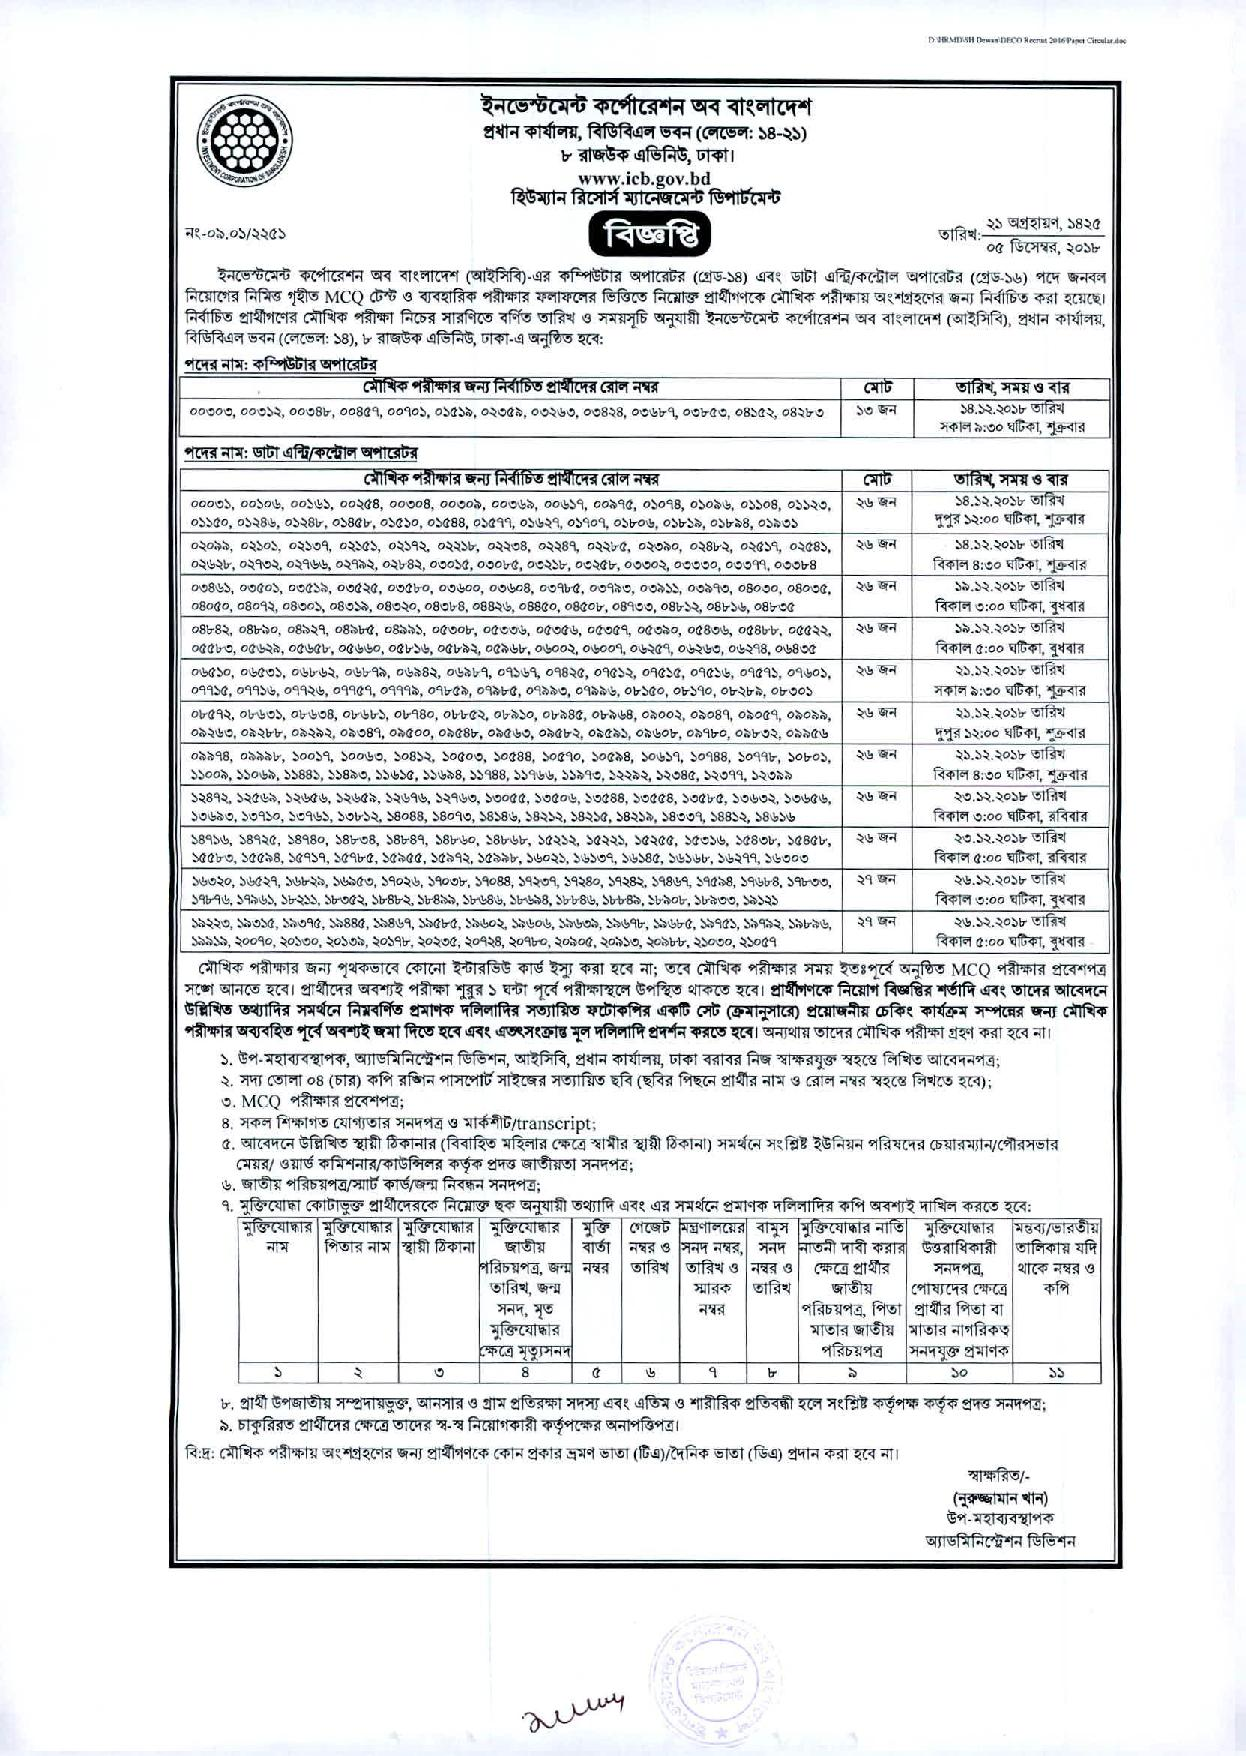 Investment Corporation of Bangladesh ICB Admit Exam Date Result 2018 Has Been Updated Now. Investment Corporation of Bangladesh Office Exam Result